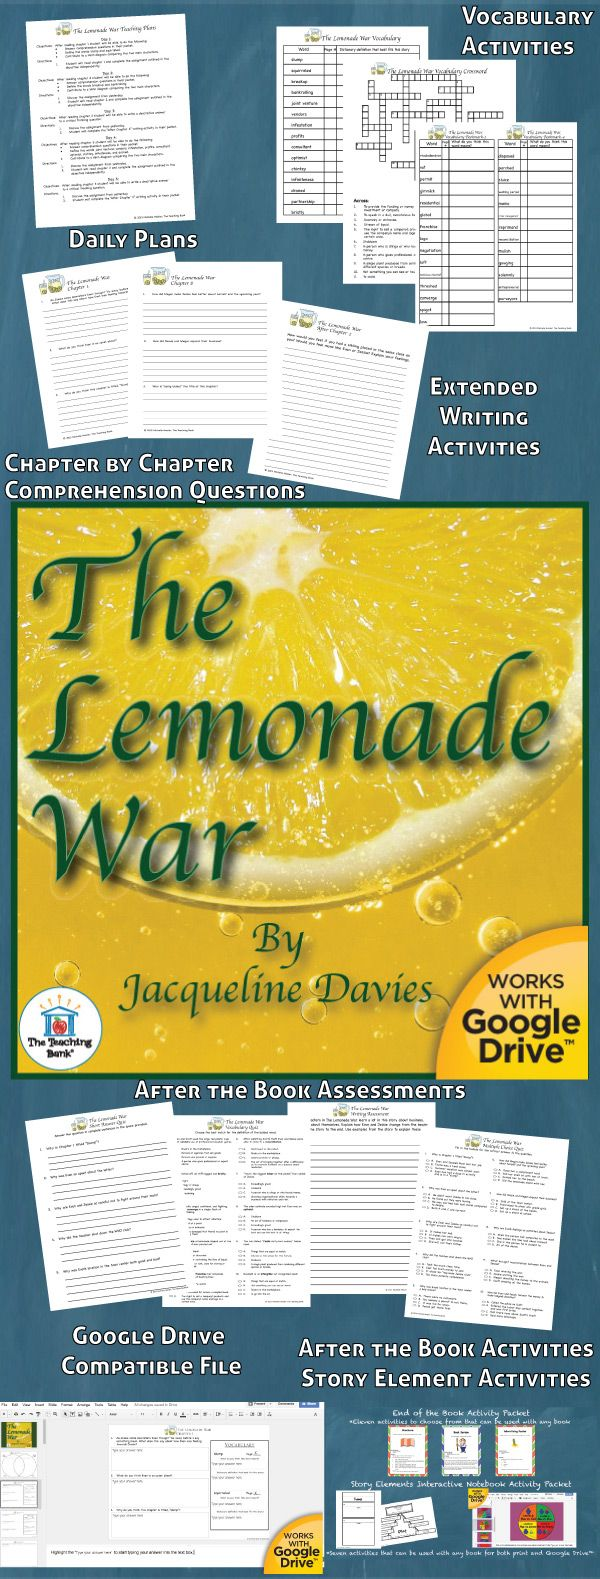 The Lemonade War Novel Study is a Common Core Standard aligned book unit to be used with The Lemonade War by Jacqueline Davies.This download contains both a printable format as well as a Google Drive™ compatible format.